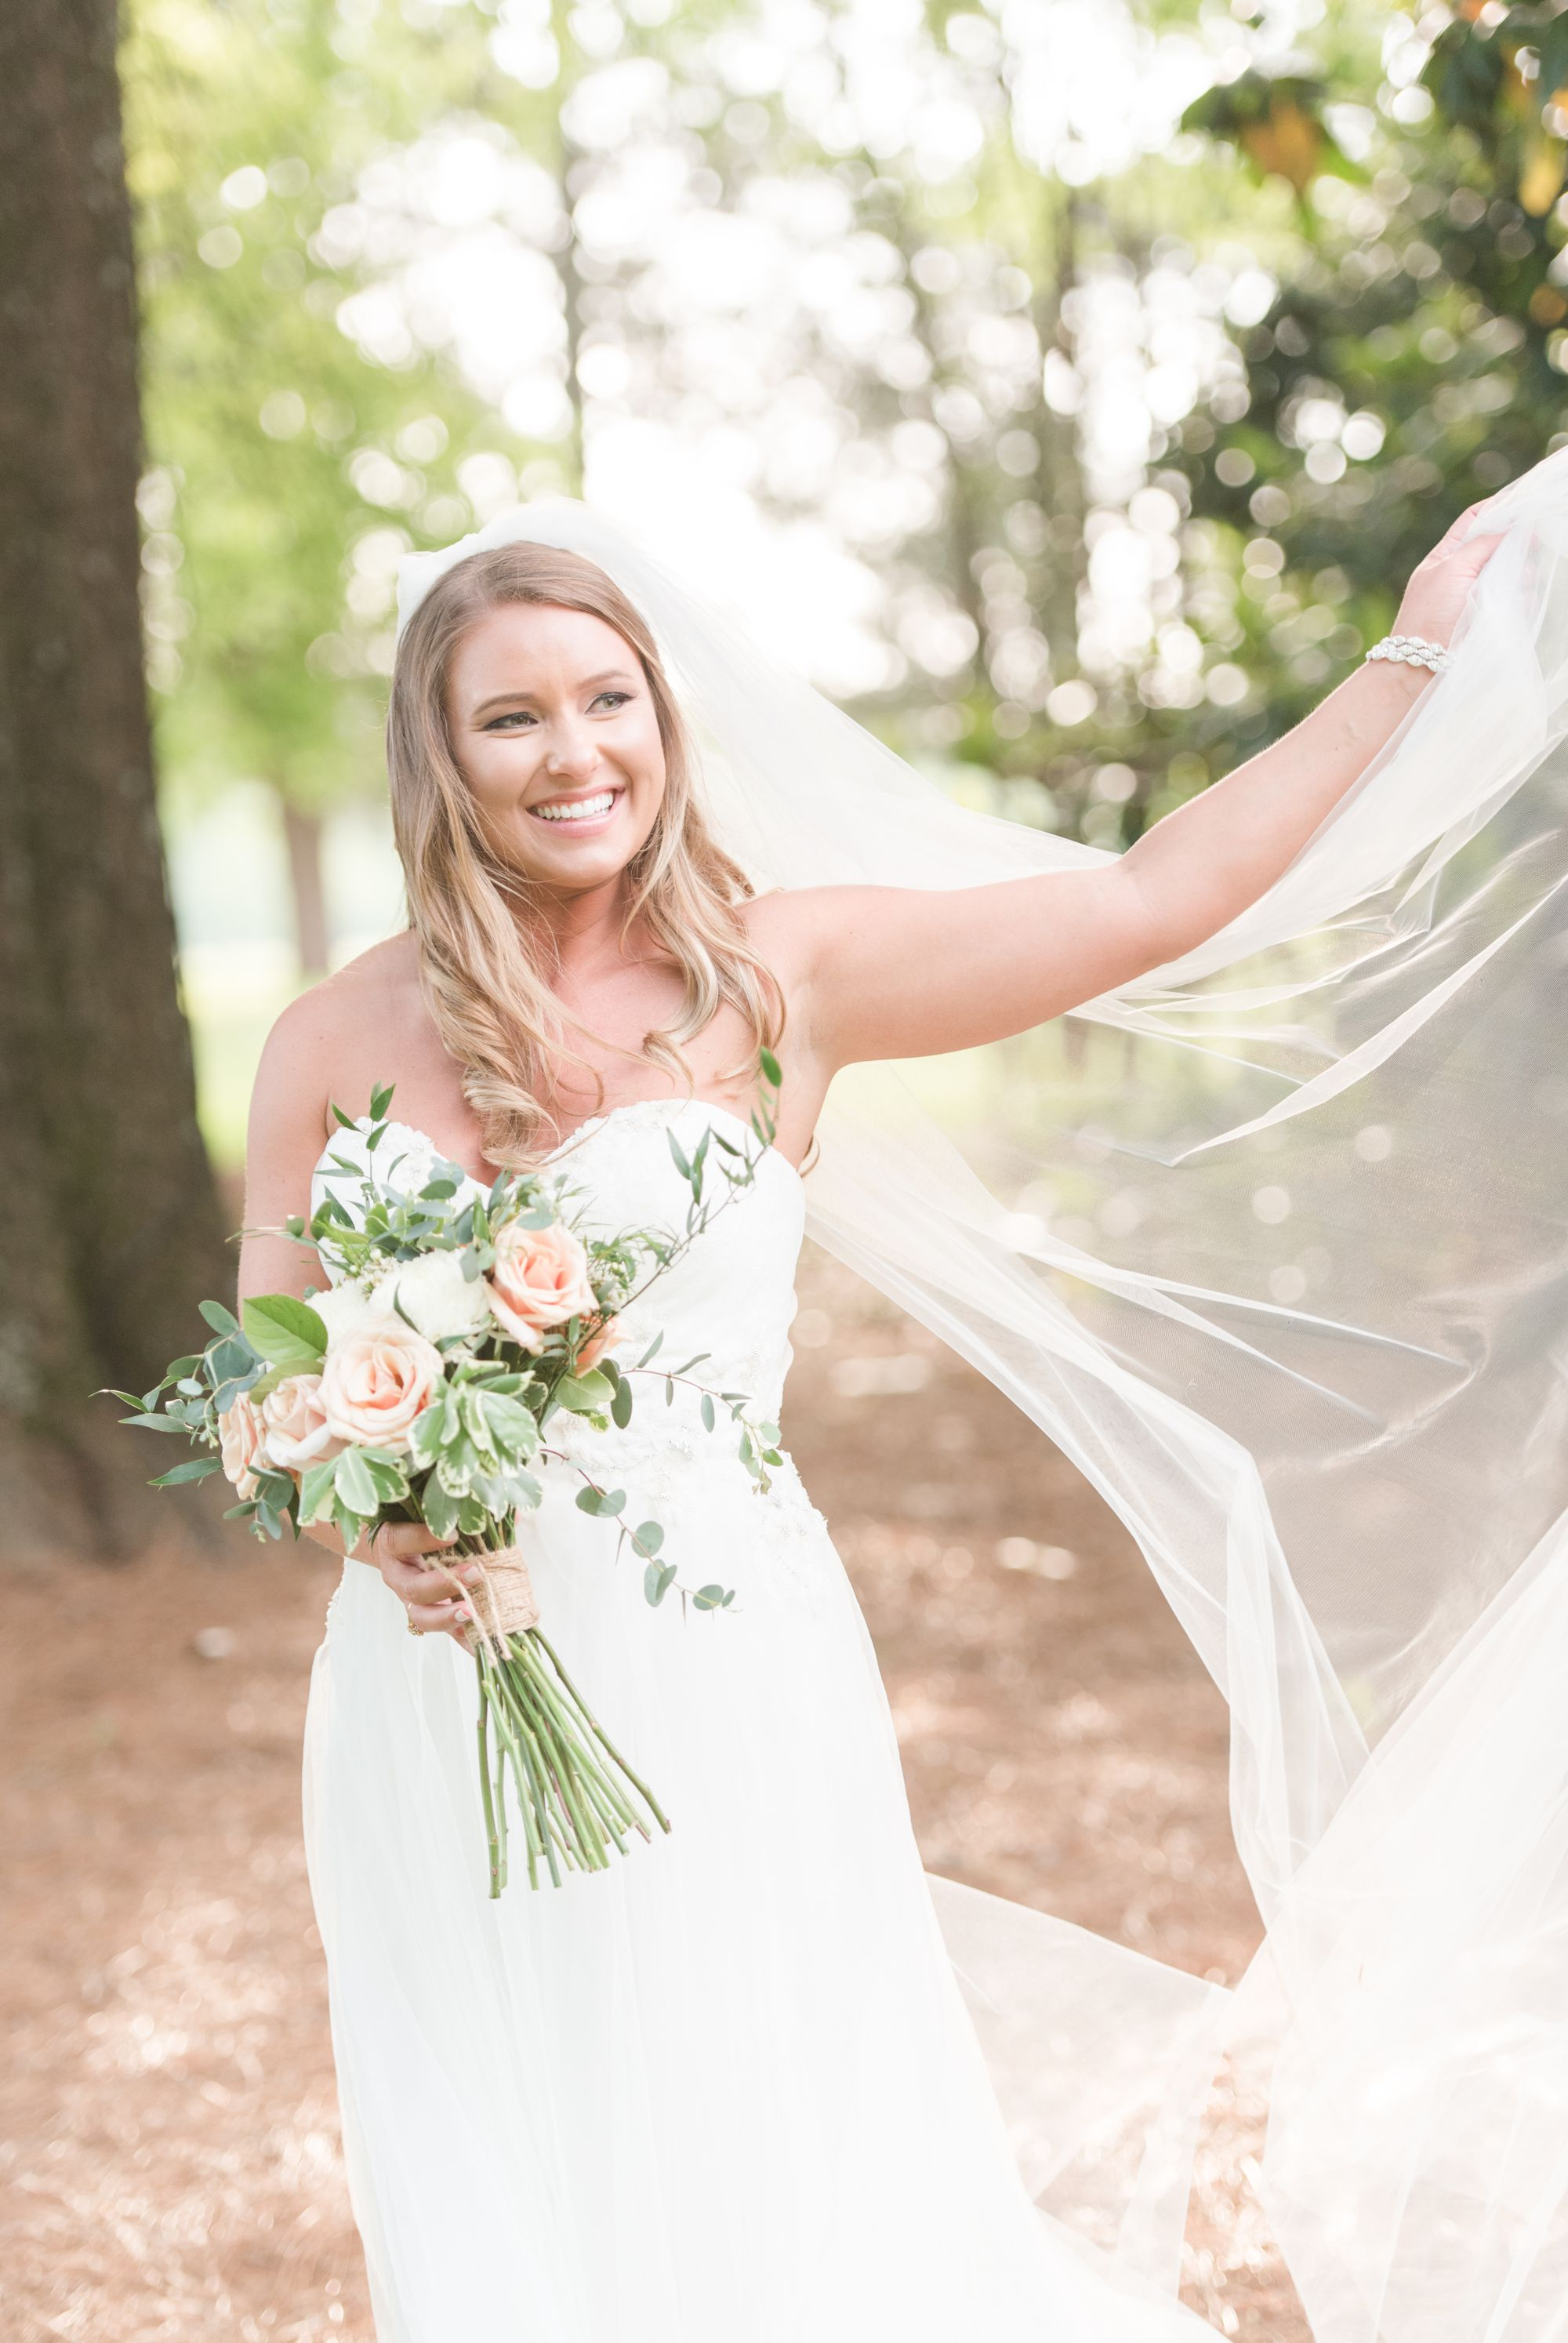 beaver-dam-house-davidson-nc-wedding-photos 75